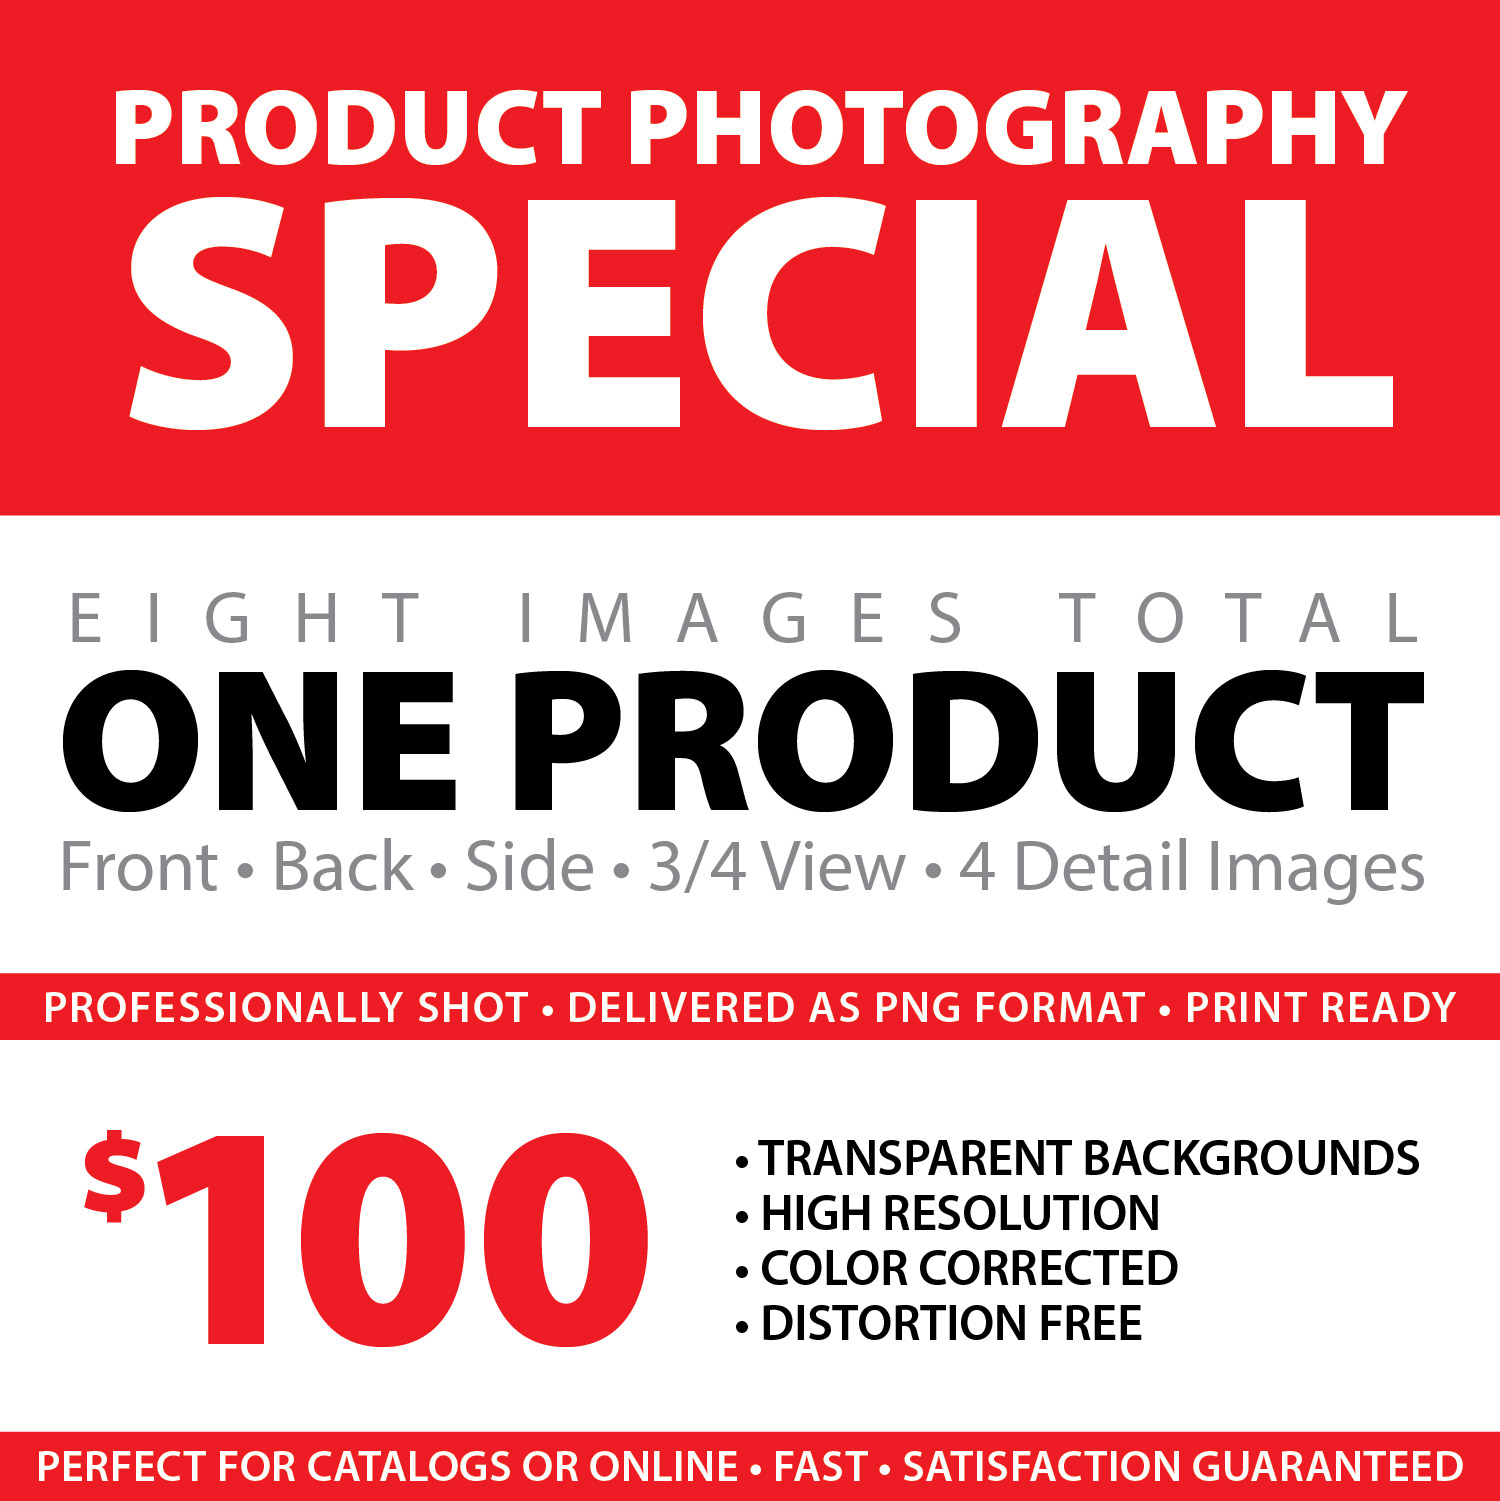 PRODUCT PHOTOGRAPHY SPECIAL